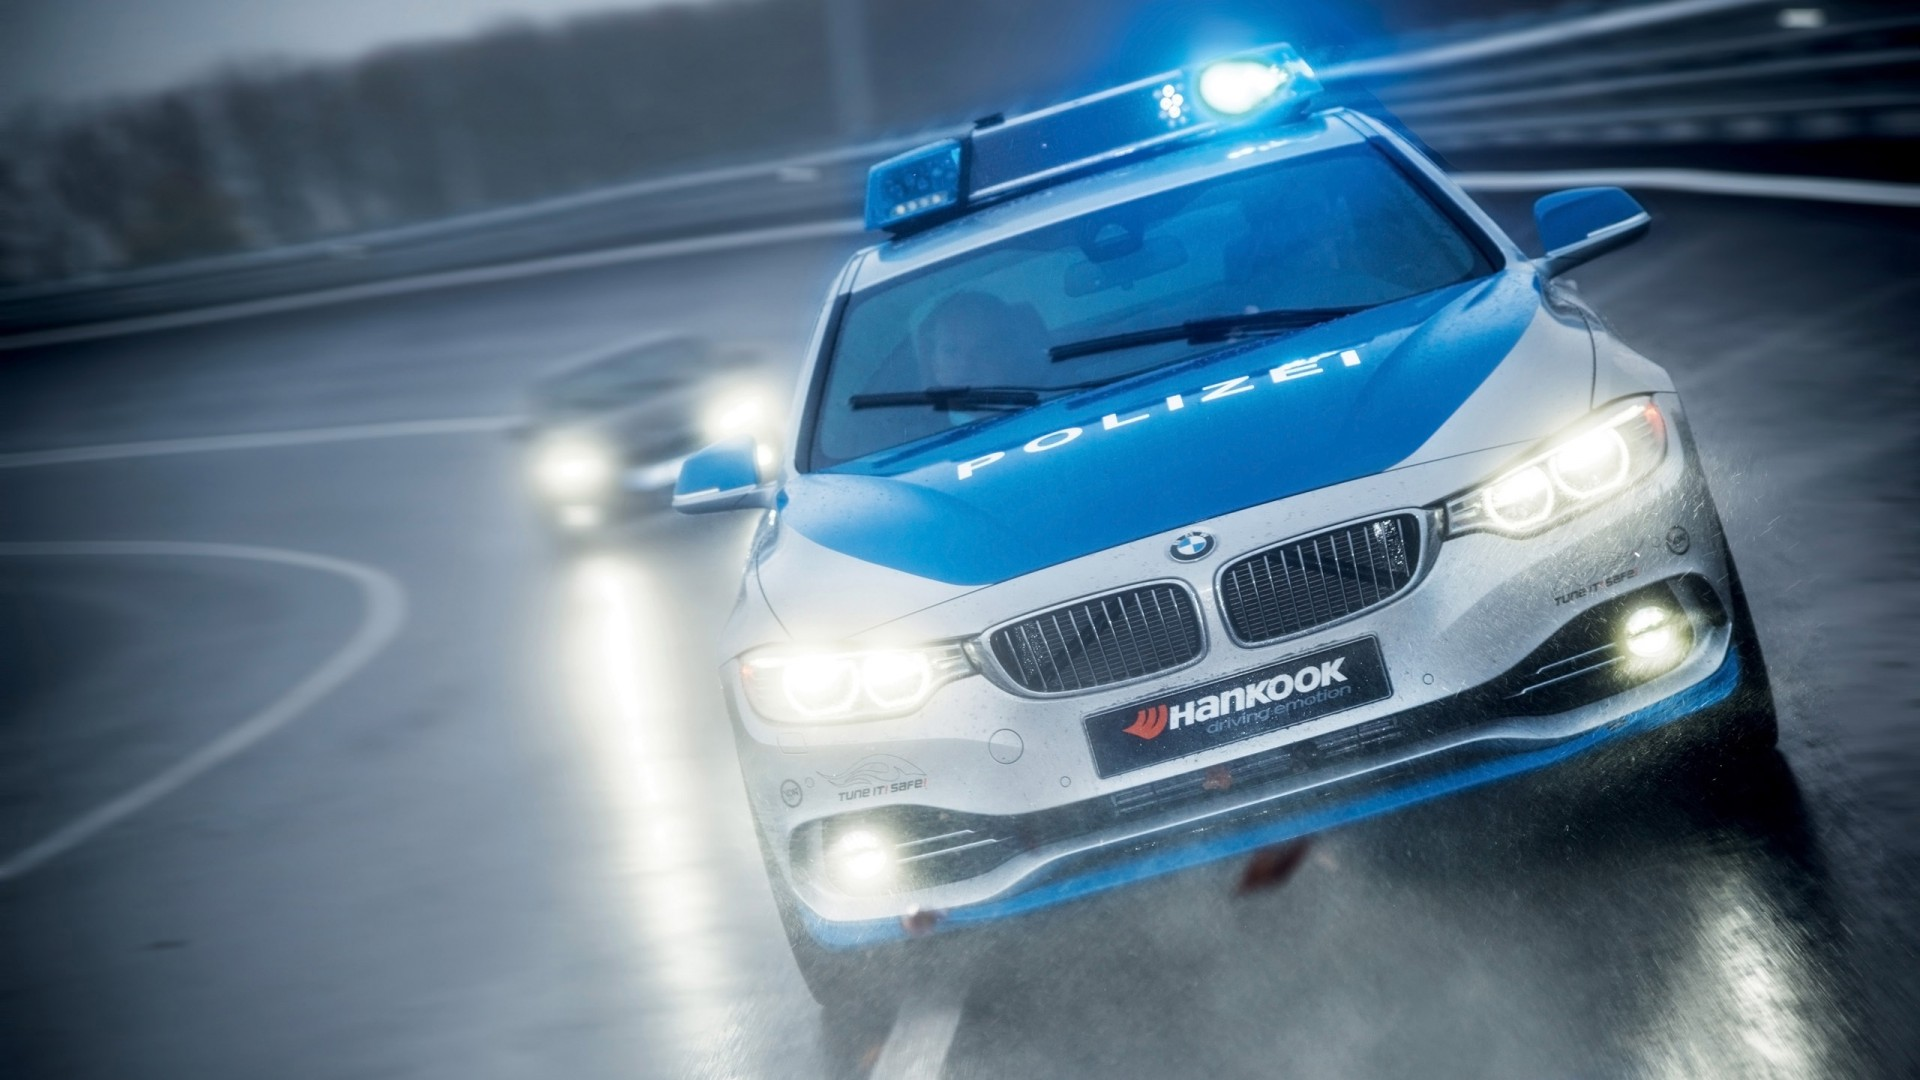 2013 AC Schnitzer BMW ACS4 2.8i Police Coupe Wallpaper ...